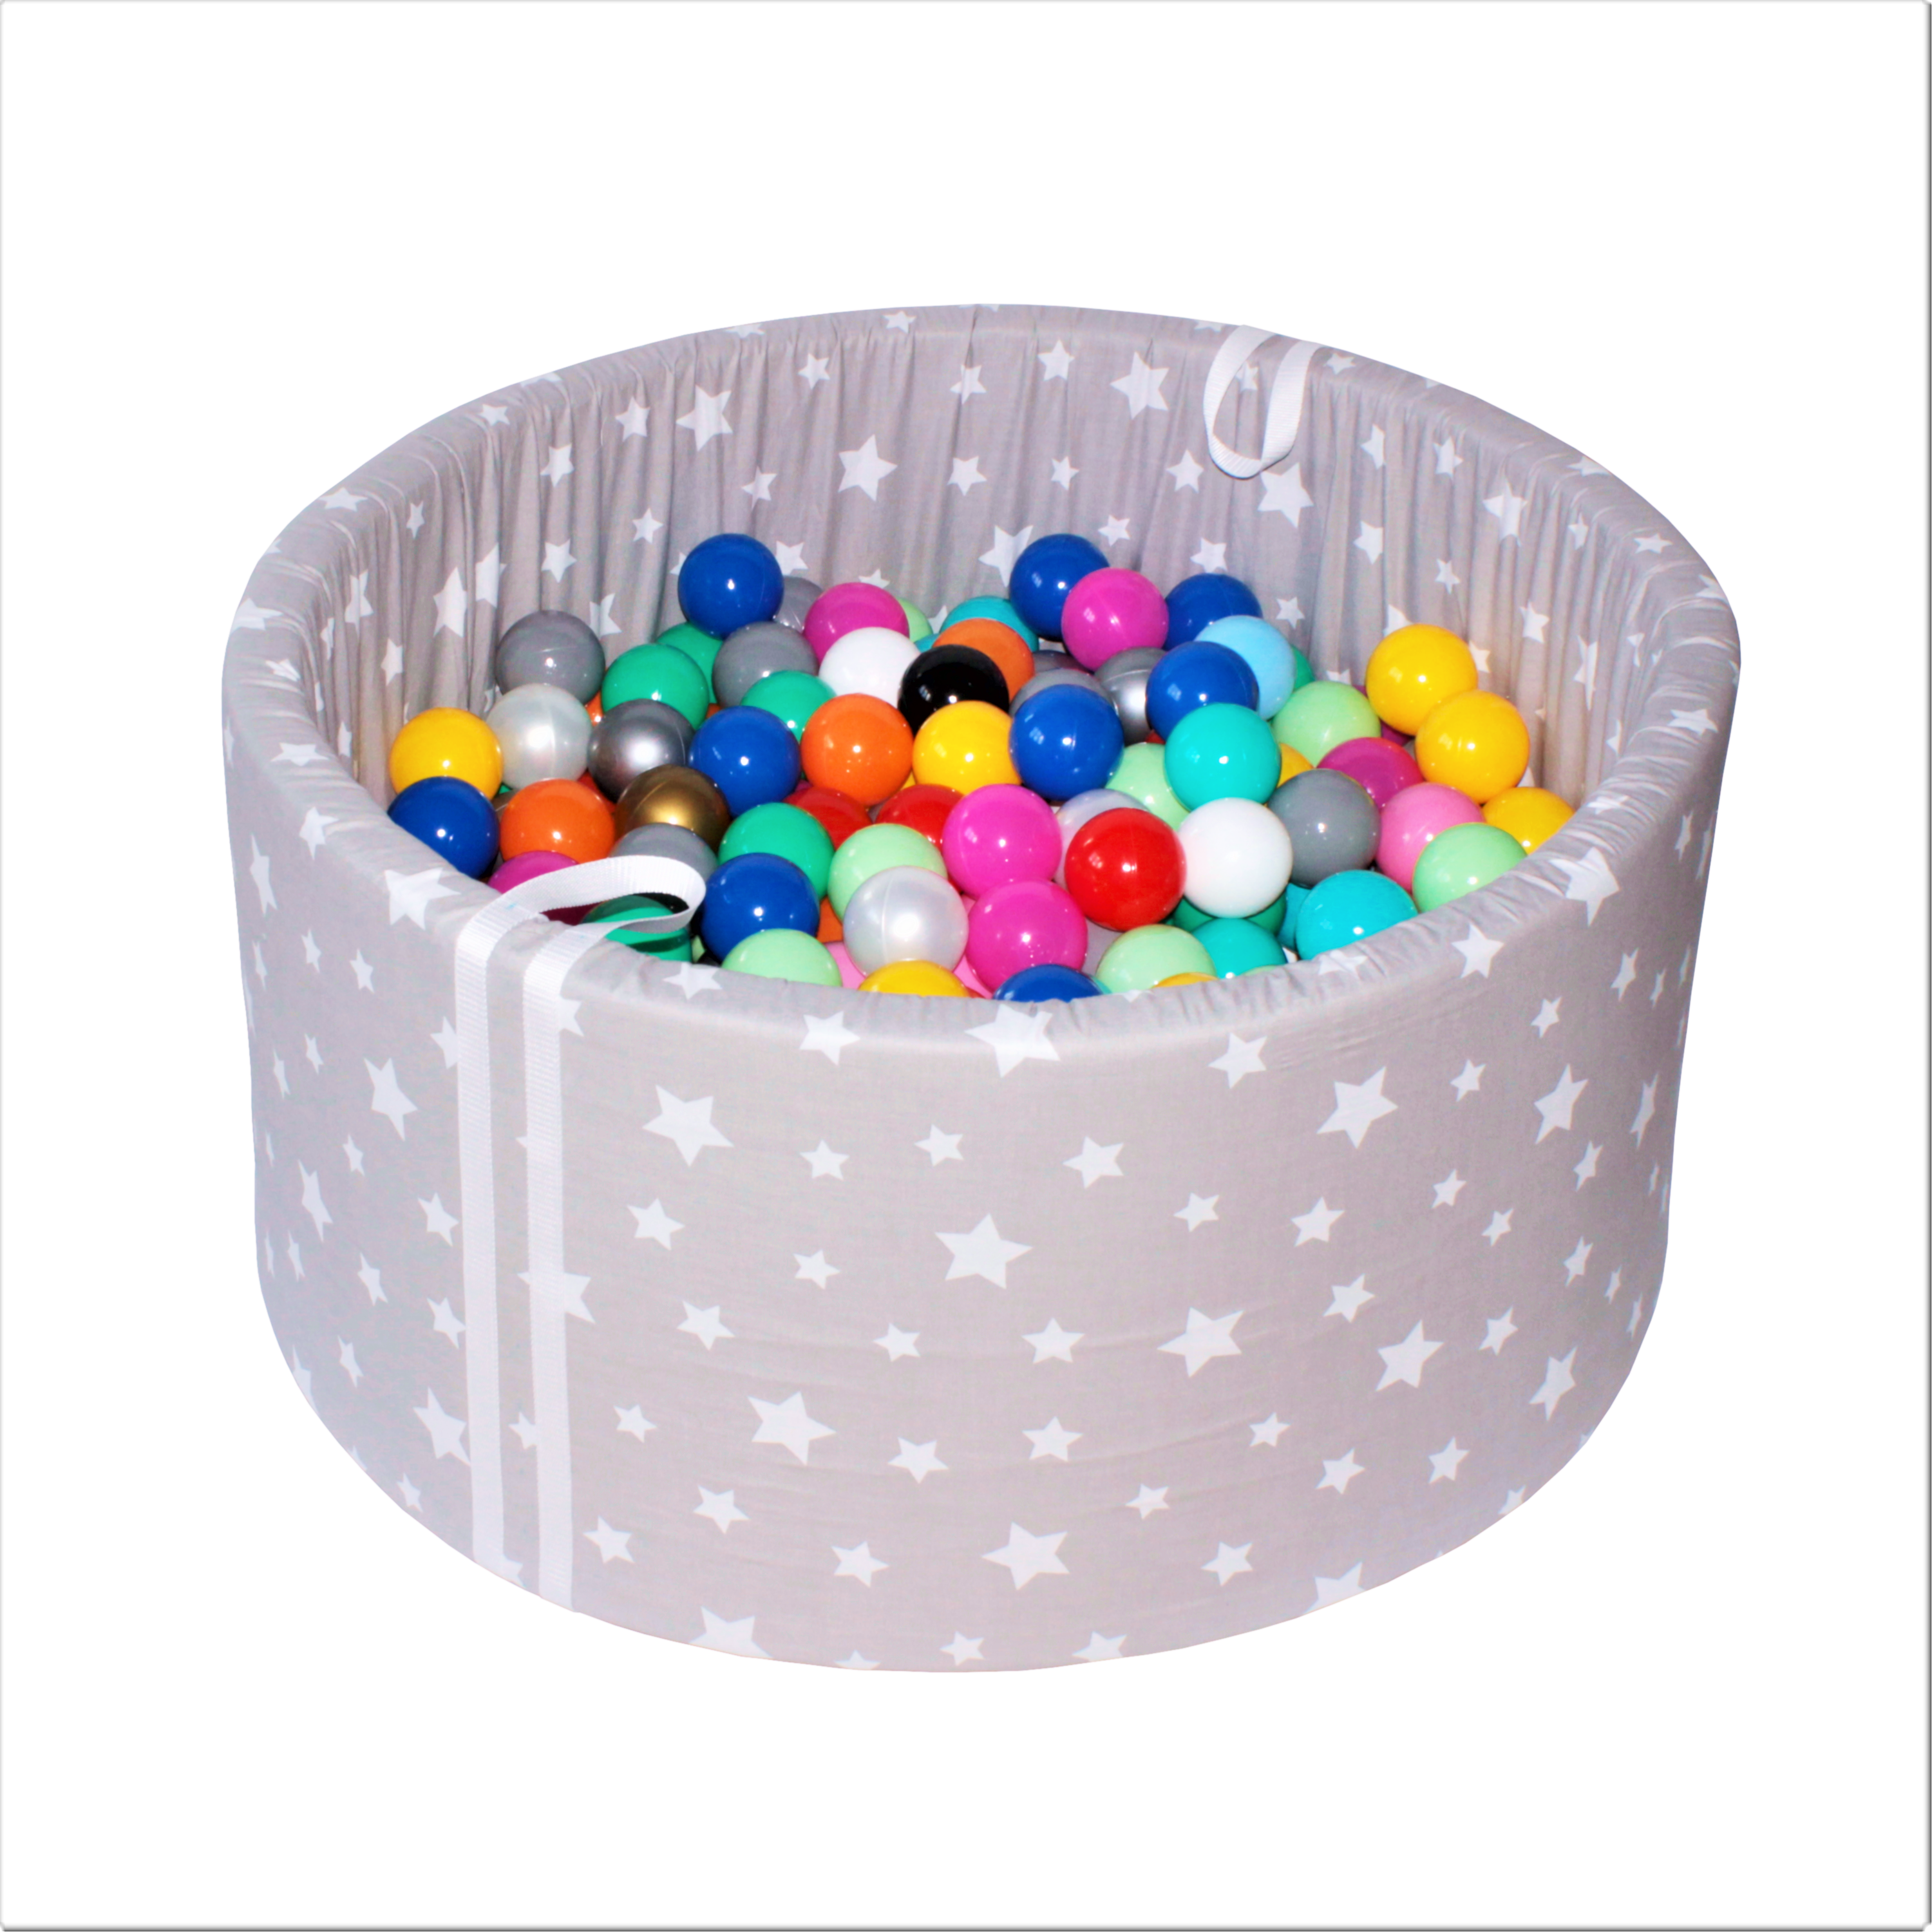 Babyball Dry Pools With Balls For Children Ball Pit Future Kids Kids Playing